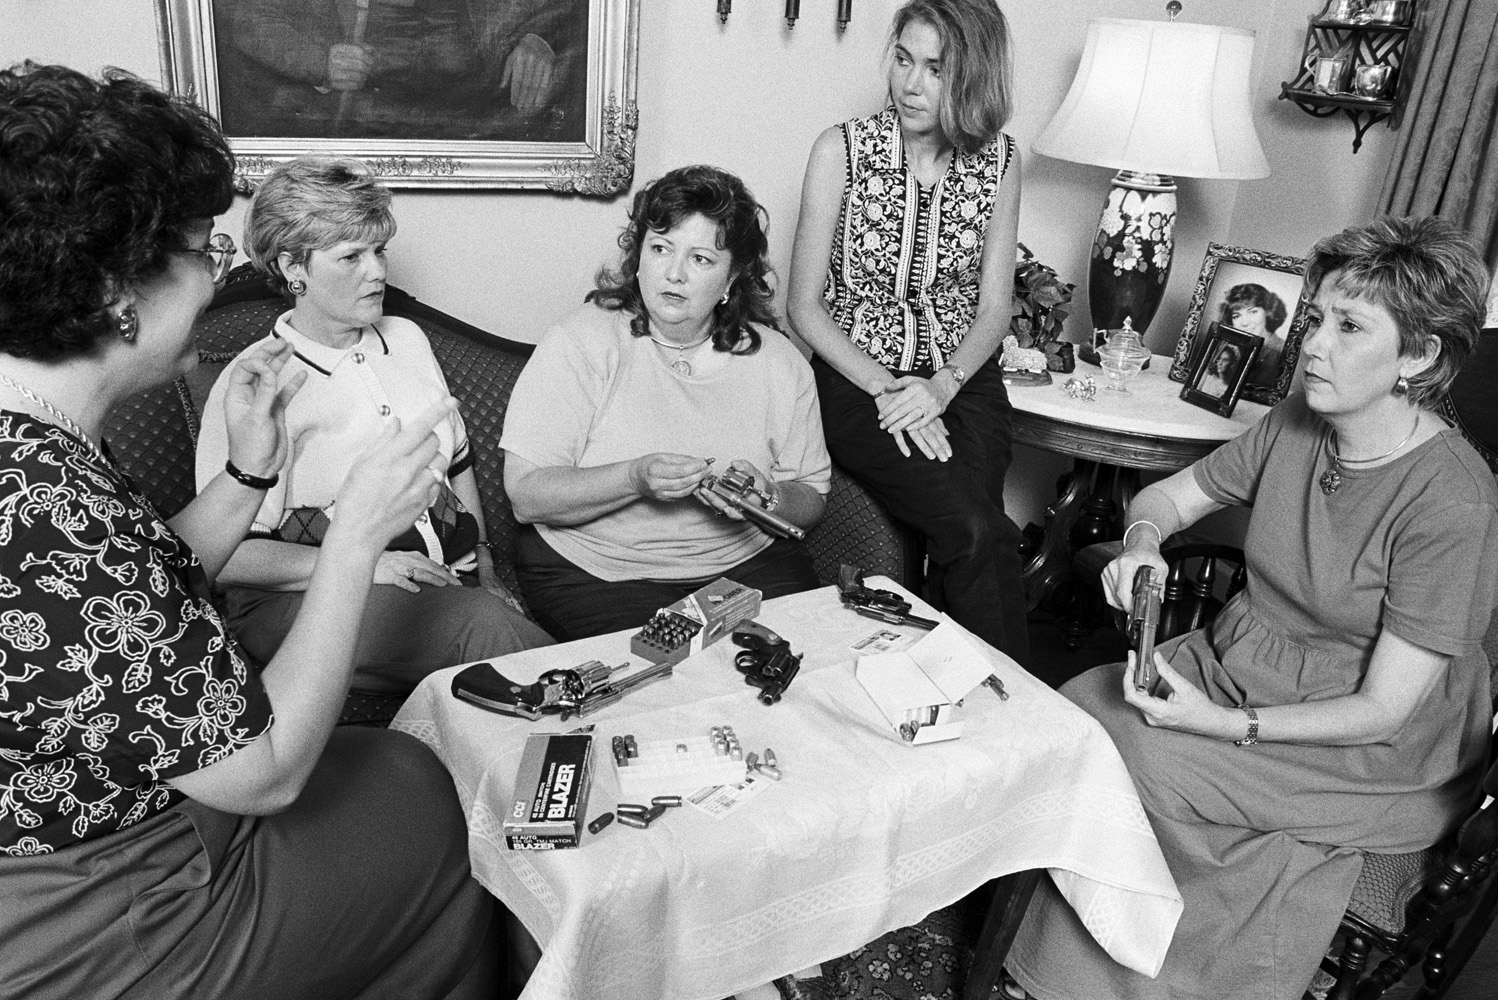 Memphis housewives meet and compare recently purchased weapons.                               Susan Wilson (center), 44, says,  I'll be carrying a 9mm semi-automatic from now on. Things are getting dangerous out there. I hope and pray that the person I shoot doesn't die. That'd be great, but I'm goin' to shoot so that I don't die.